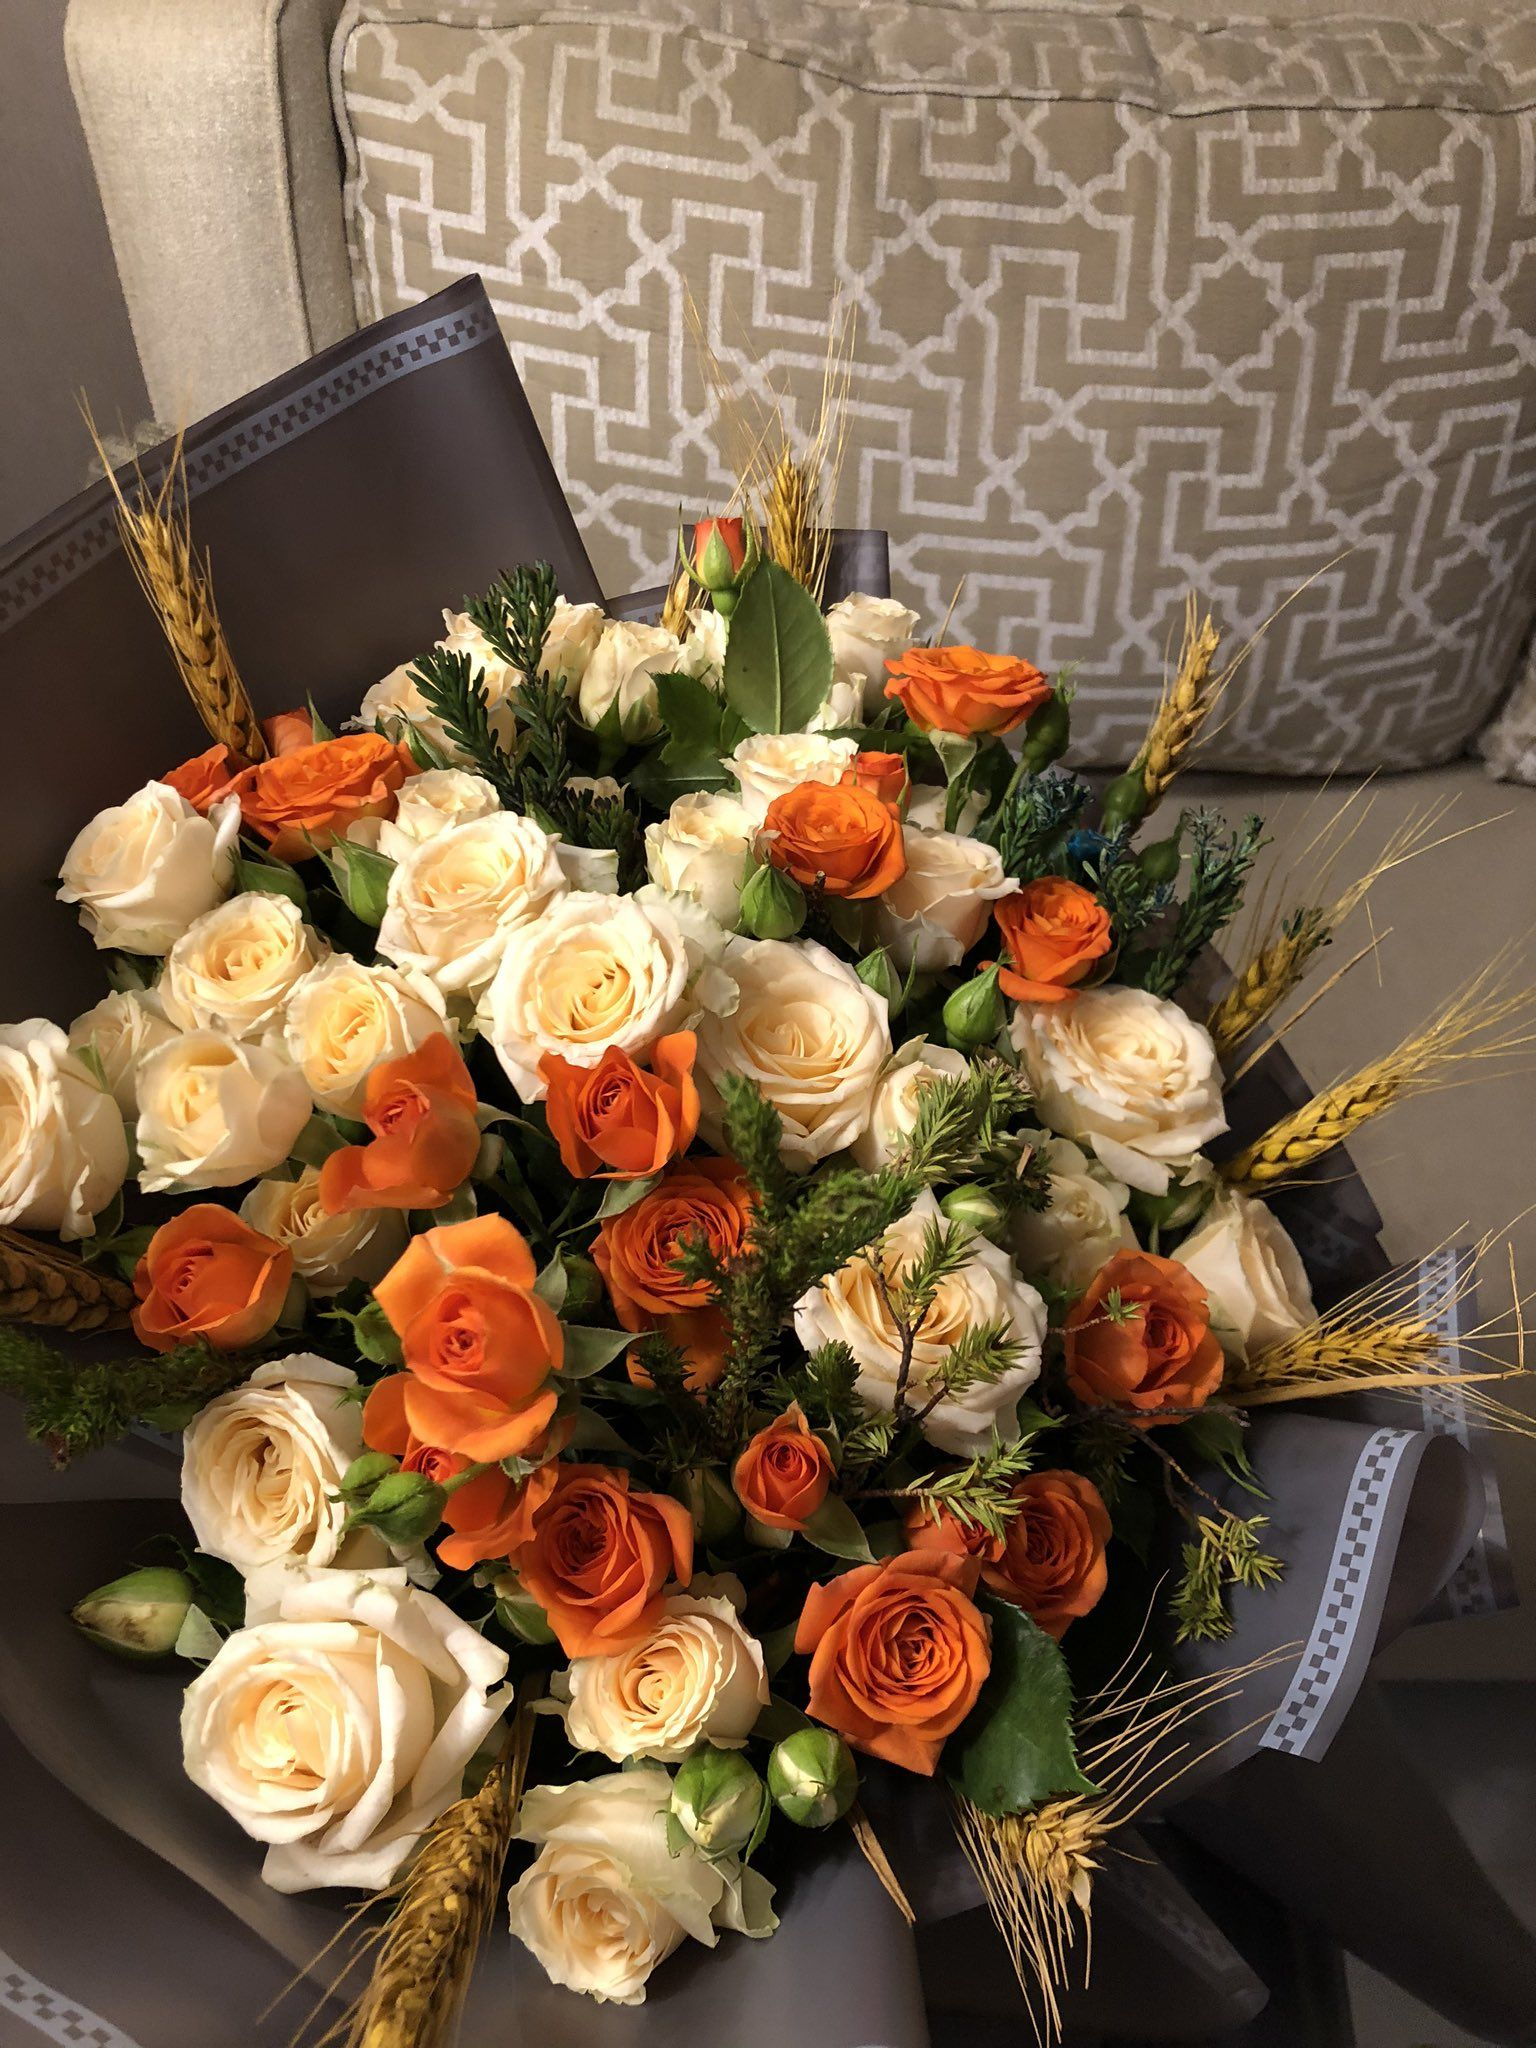 𝙳𝚛 𝚆𝚎𝚏 On Twitter Beautiful Bouquet Of Flowers Pretty Flowers Flower Aesthetic